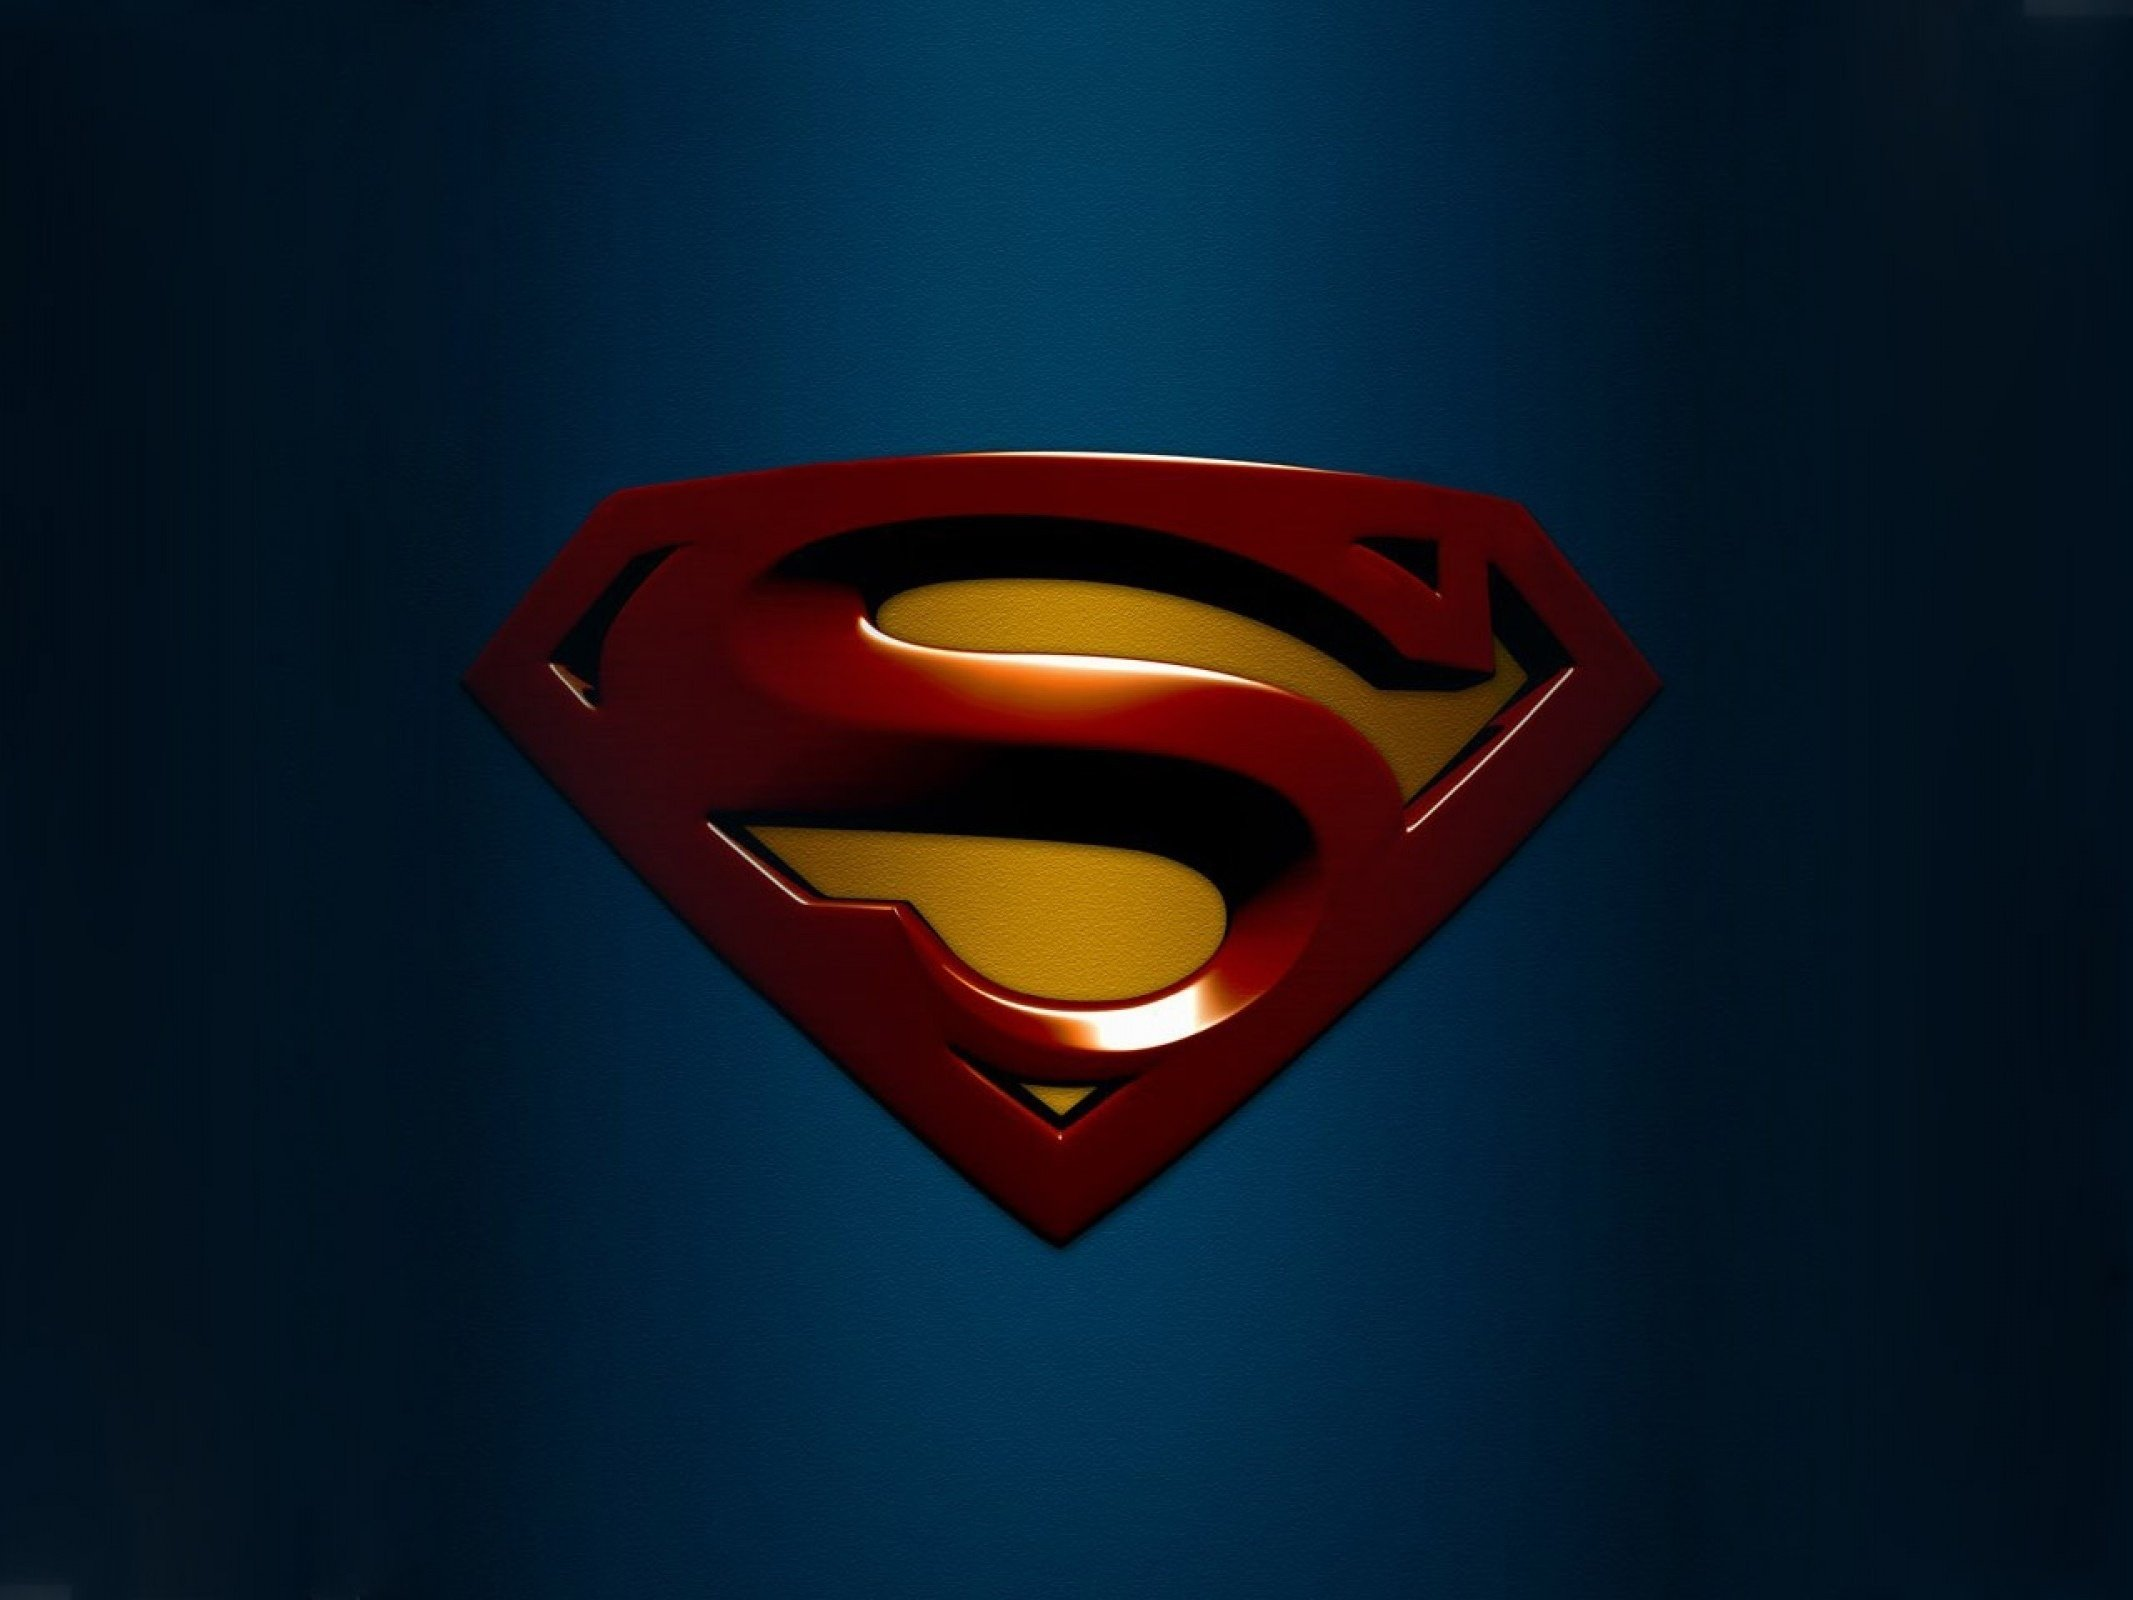 435 Superman HD Wallpapers | Backgrounds - Wallpaper Abyss